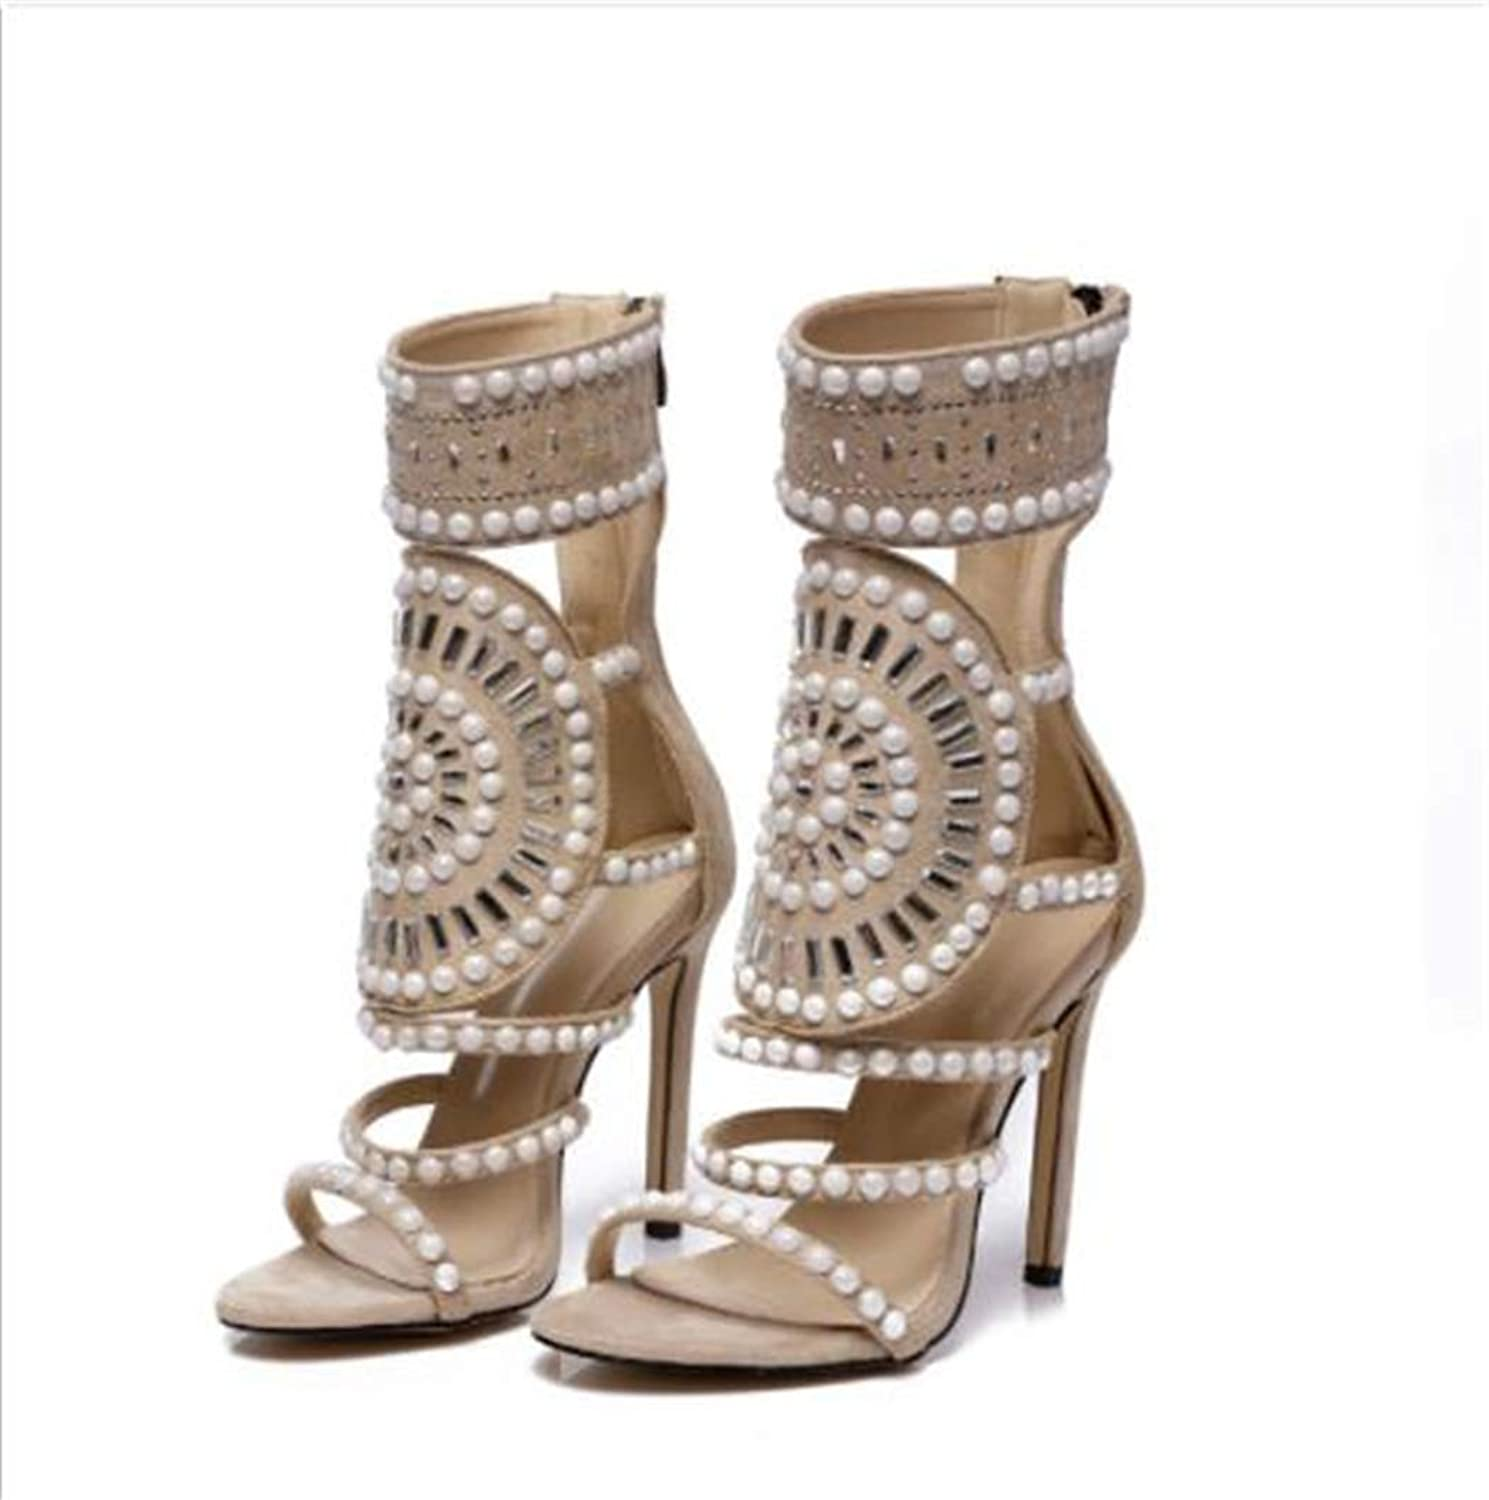 WYQQ Openwork Rhinestone Sandals high Heel Fish Mouth high Heels Stiletto high Help for Women